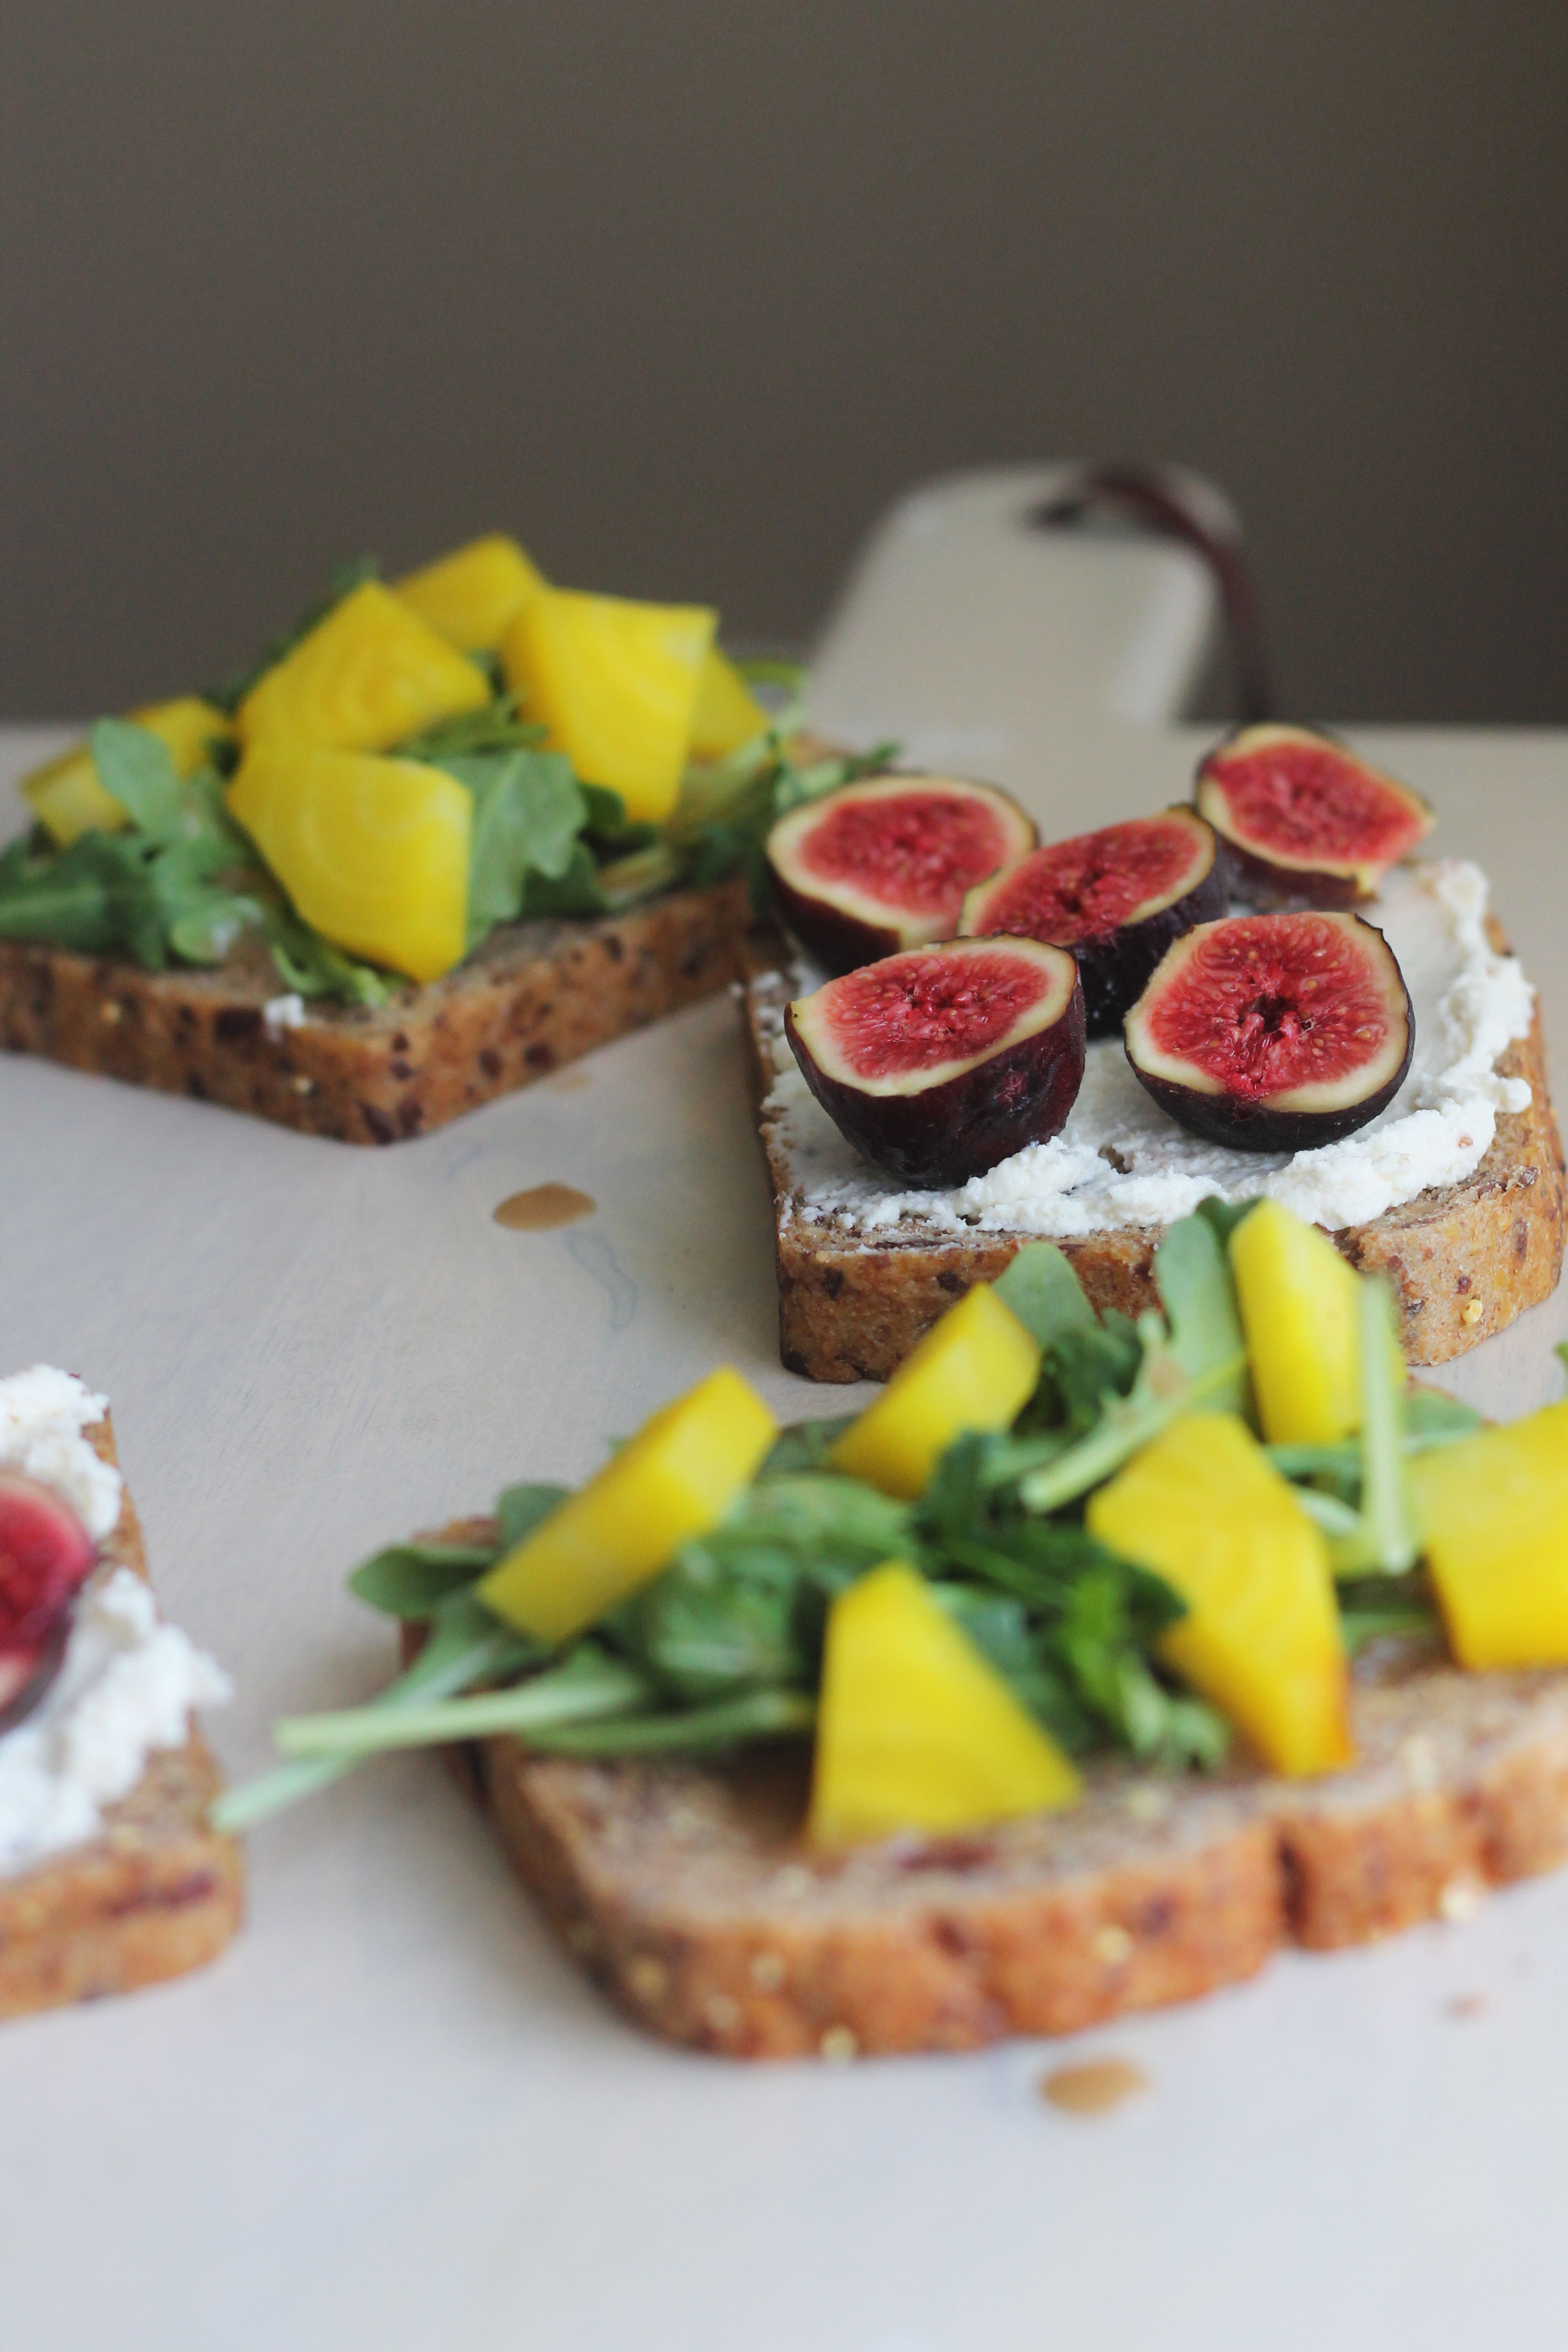 Meet your new favorite sandwich - Beet, Figs, and Goat Cheese